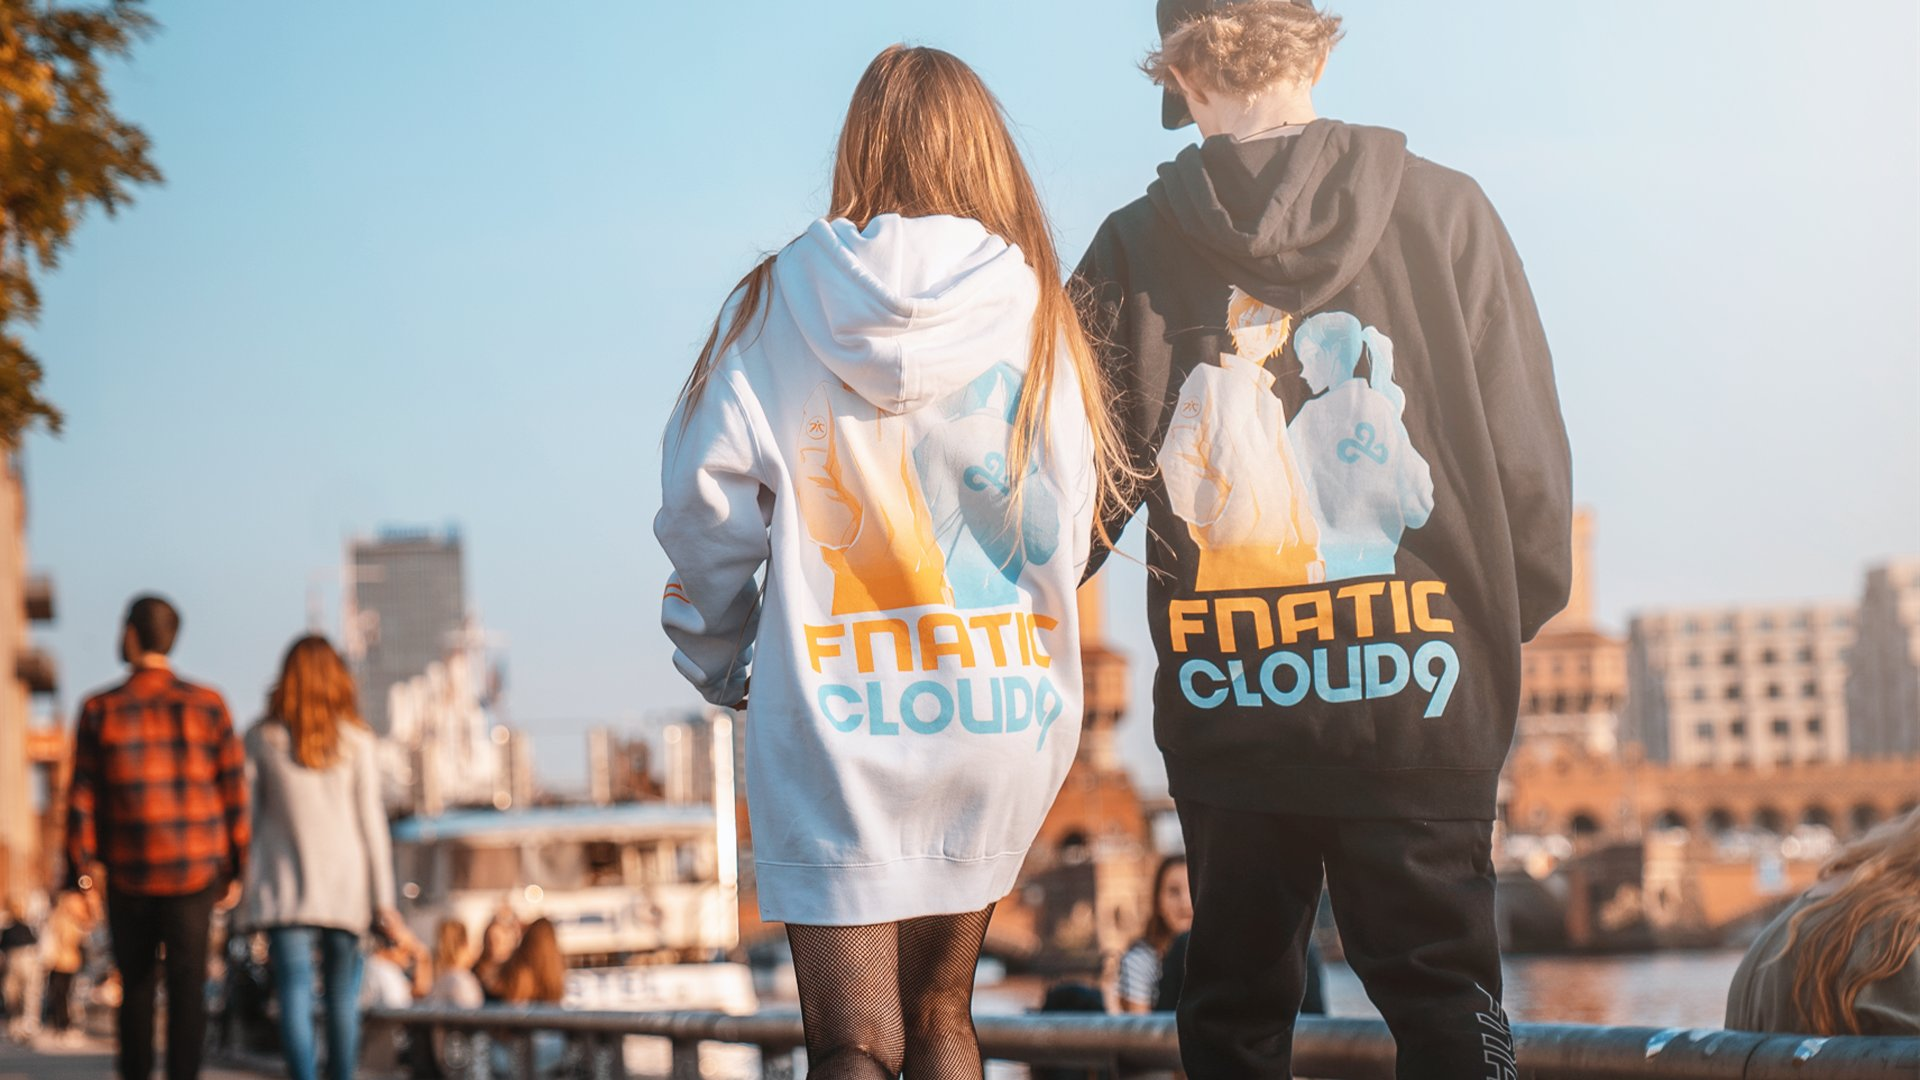 Fnatic And Cloud9 Introduced New Fnc9 Collaborative Collection